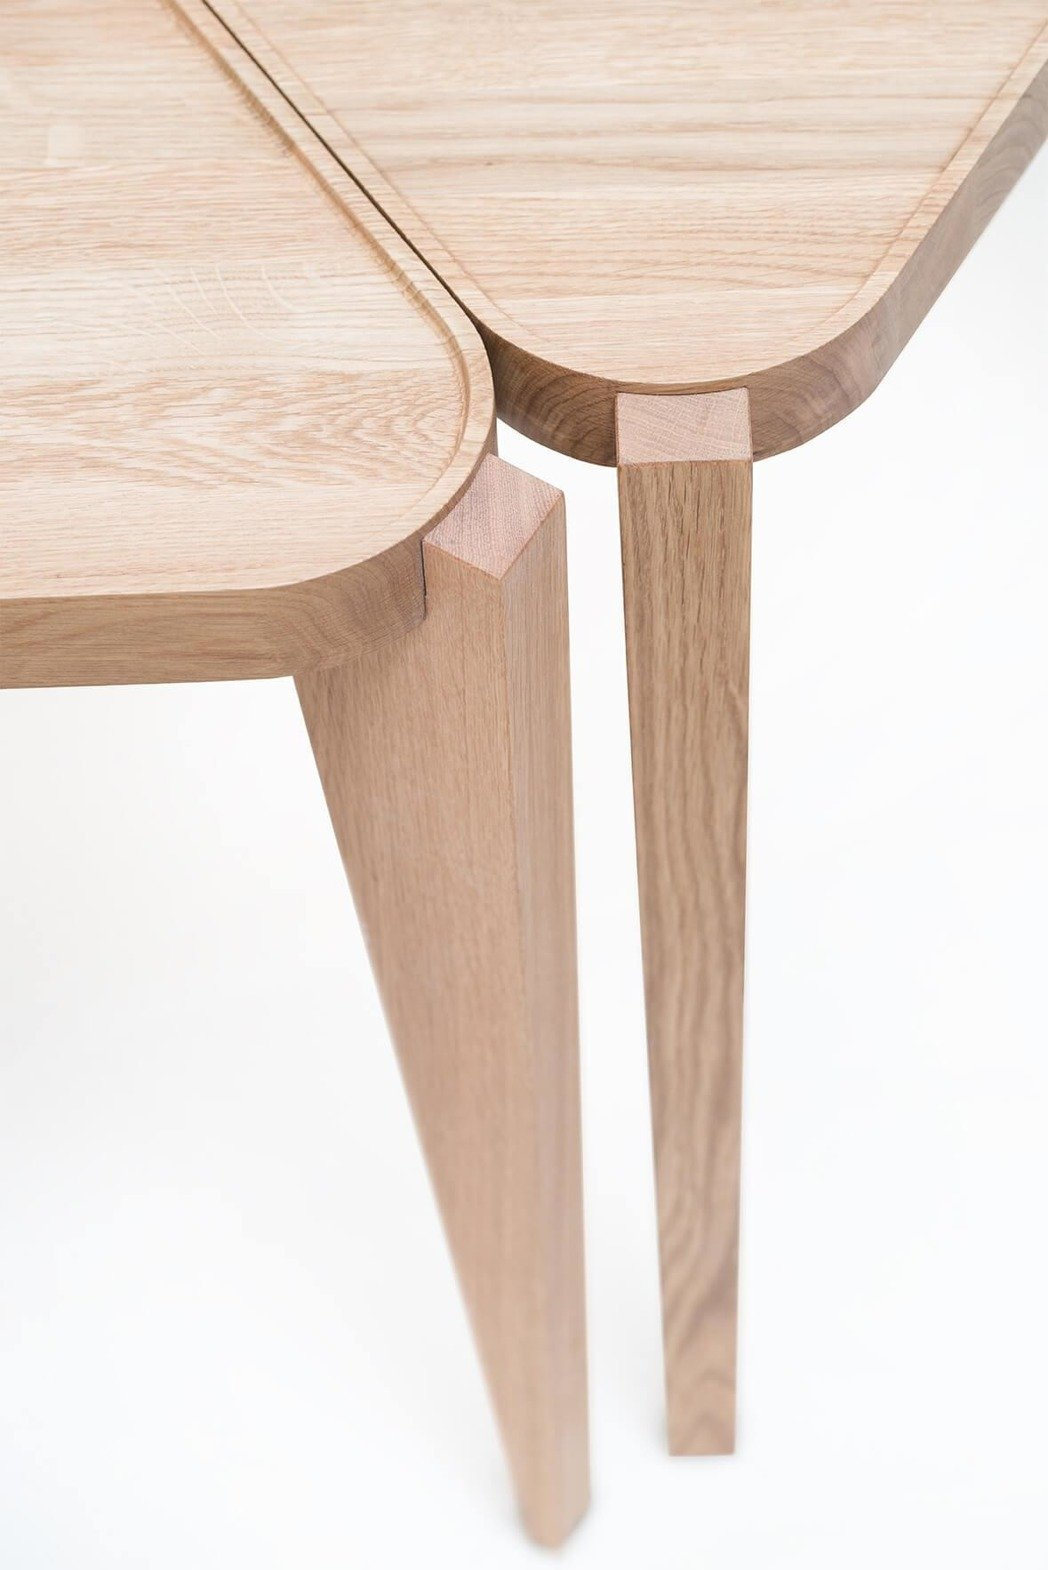 SWALLOW'S TAIL FURNITURE :: Bontri table TRIANGLE